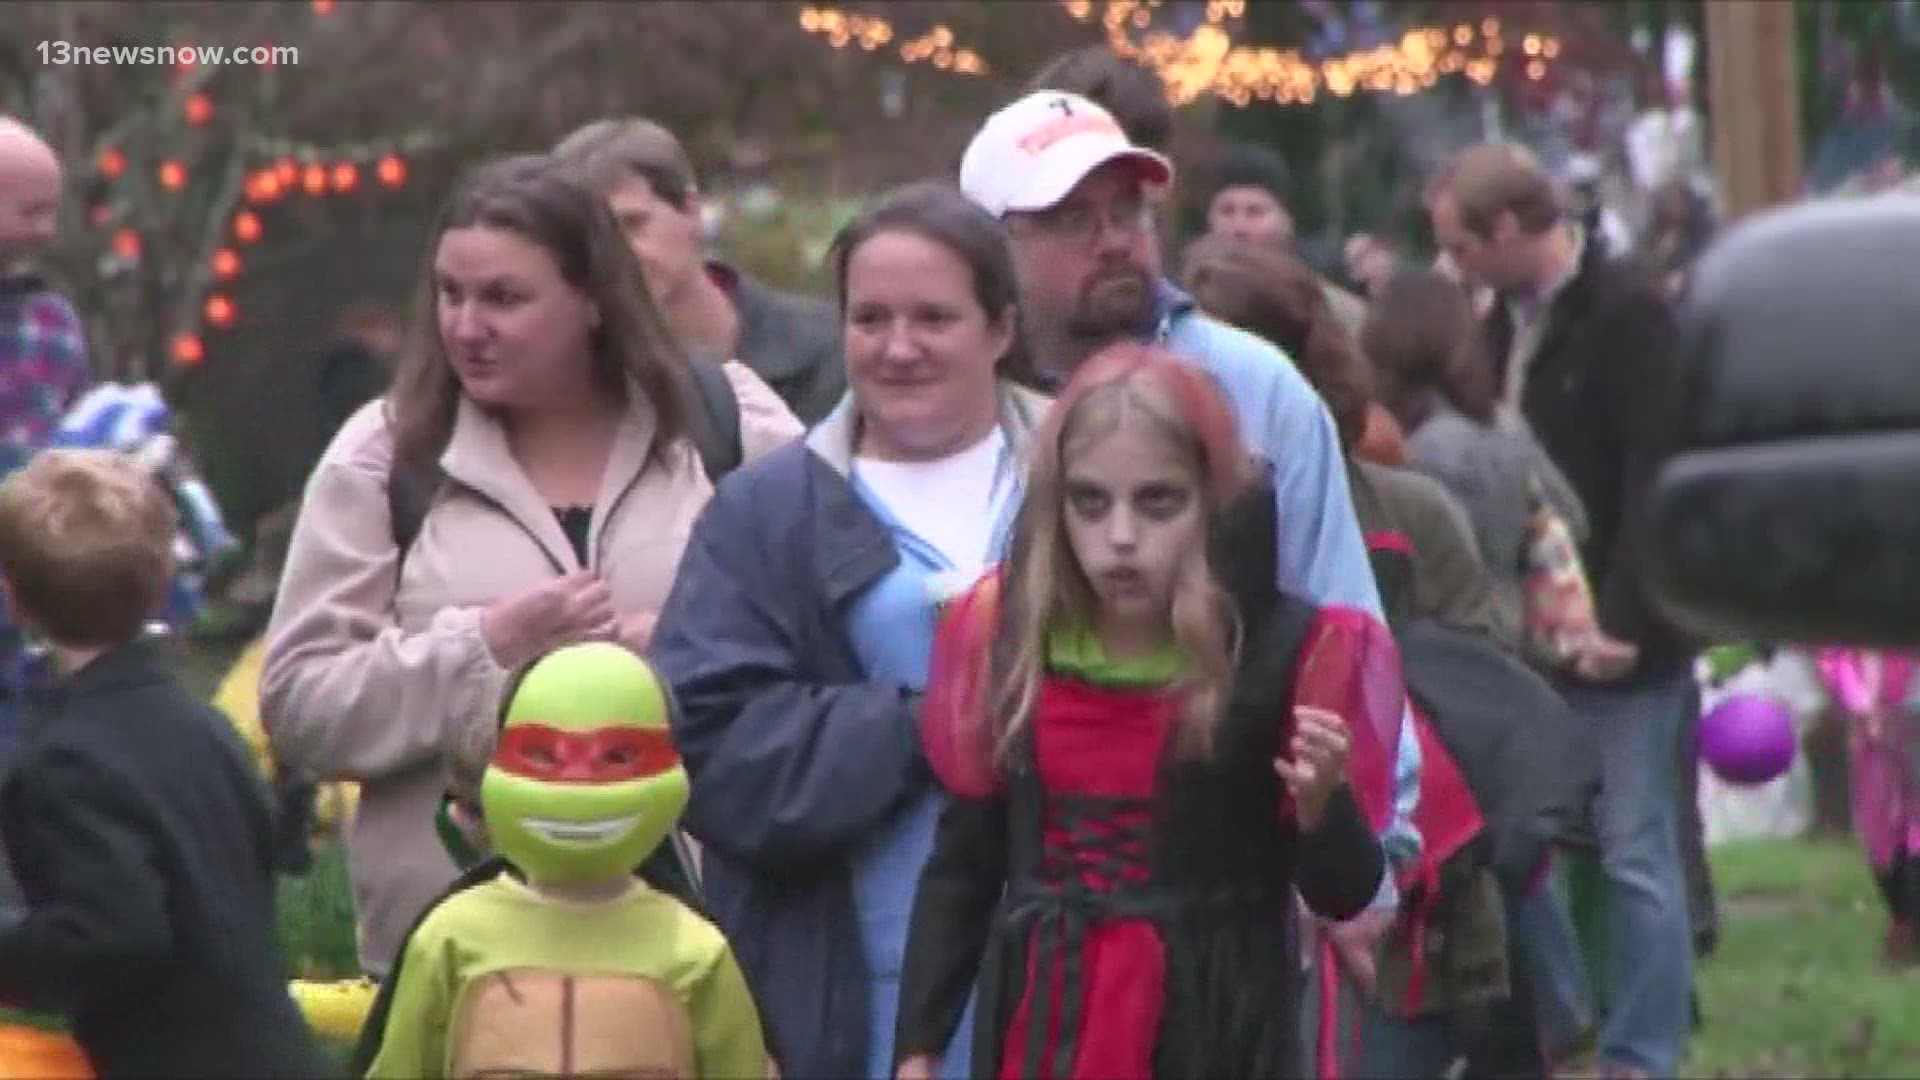 Halloween Events 2020 South Carolina Is Halloween canceled this year? | wltx.com